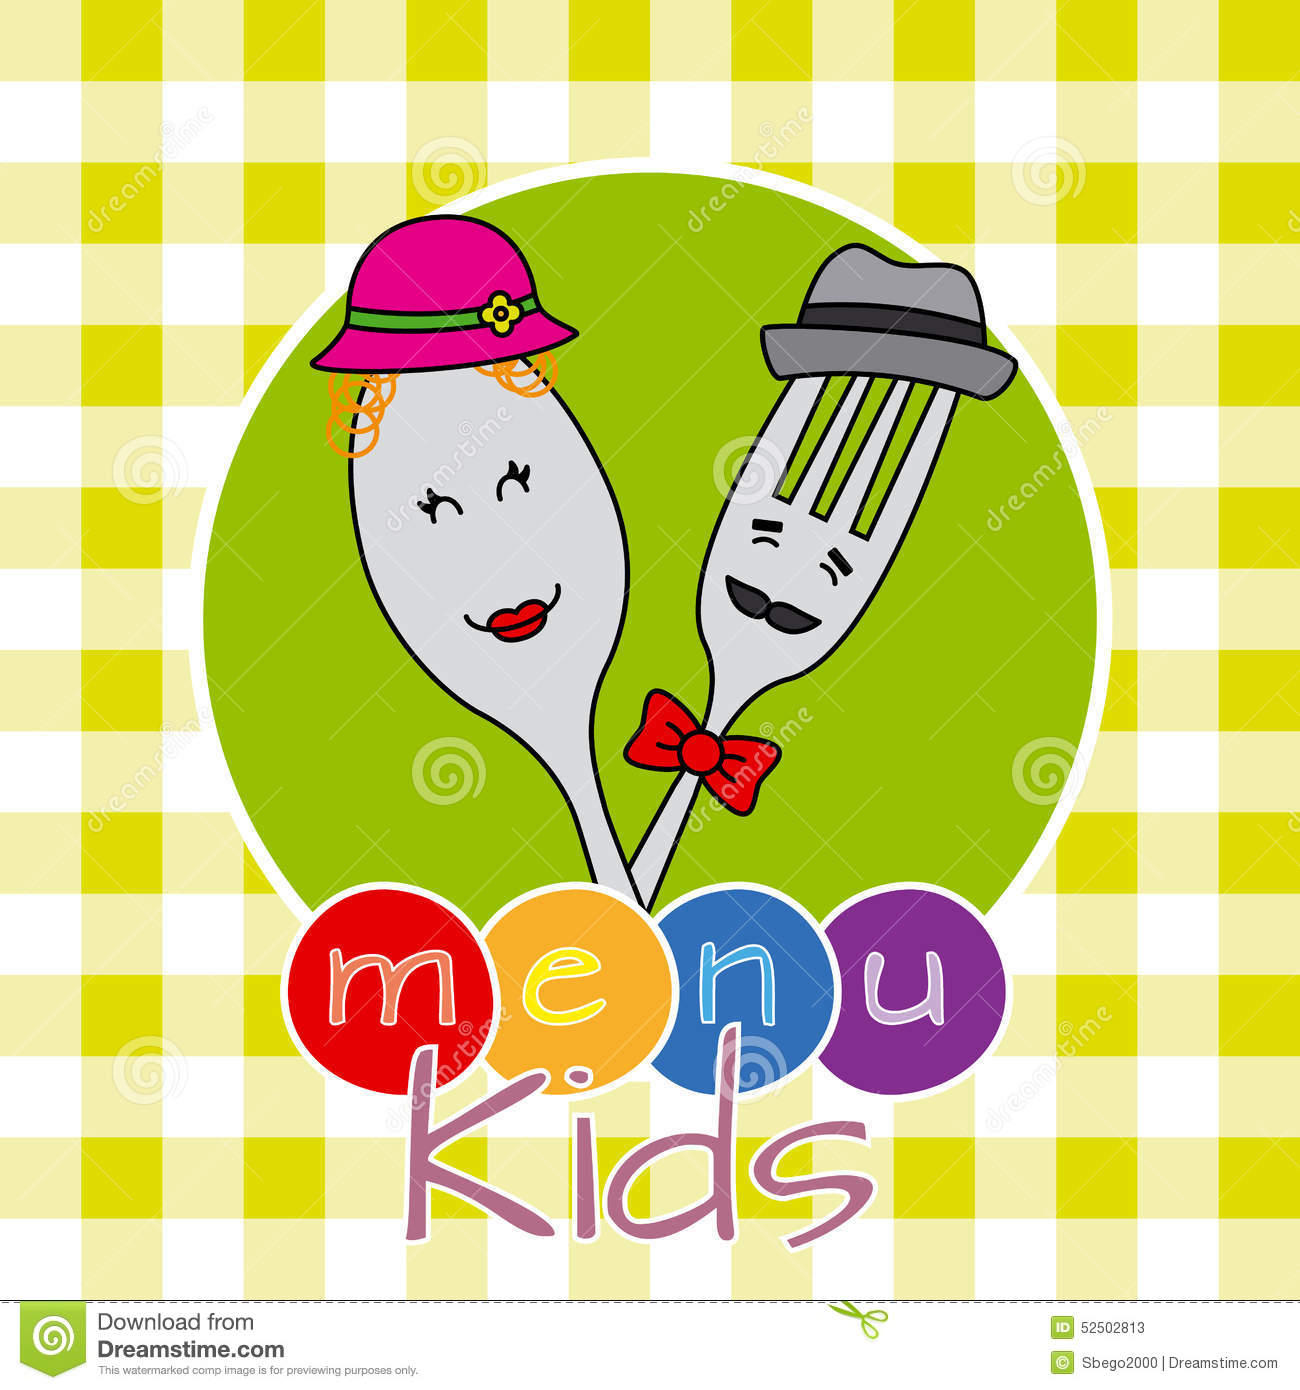 Funny card for kids menu. Spoon and fork disguised.